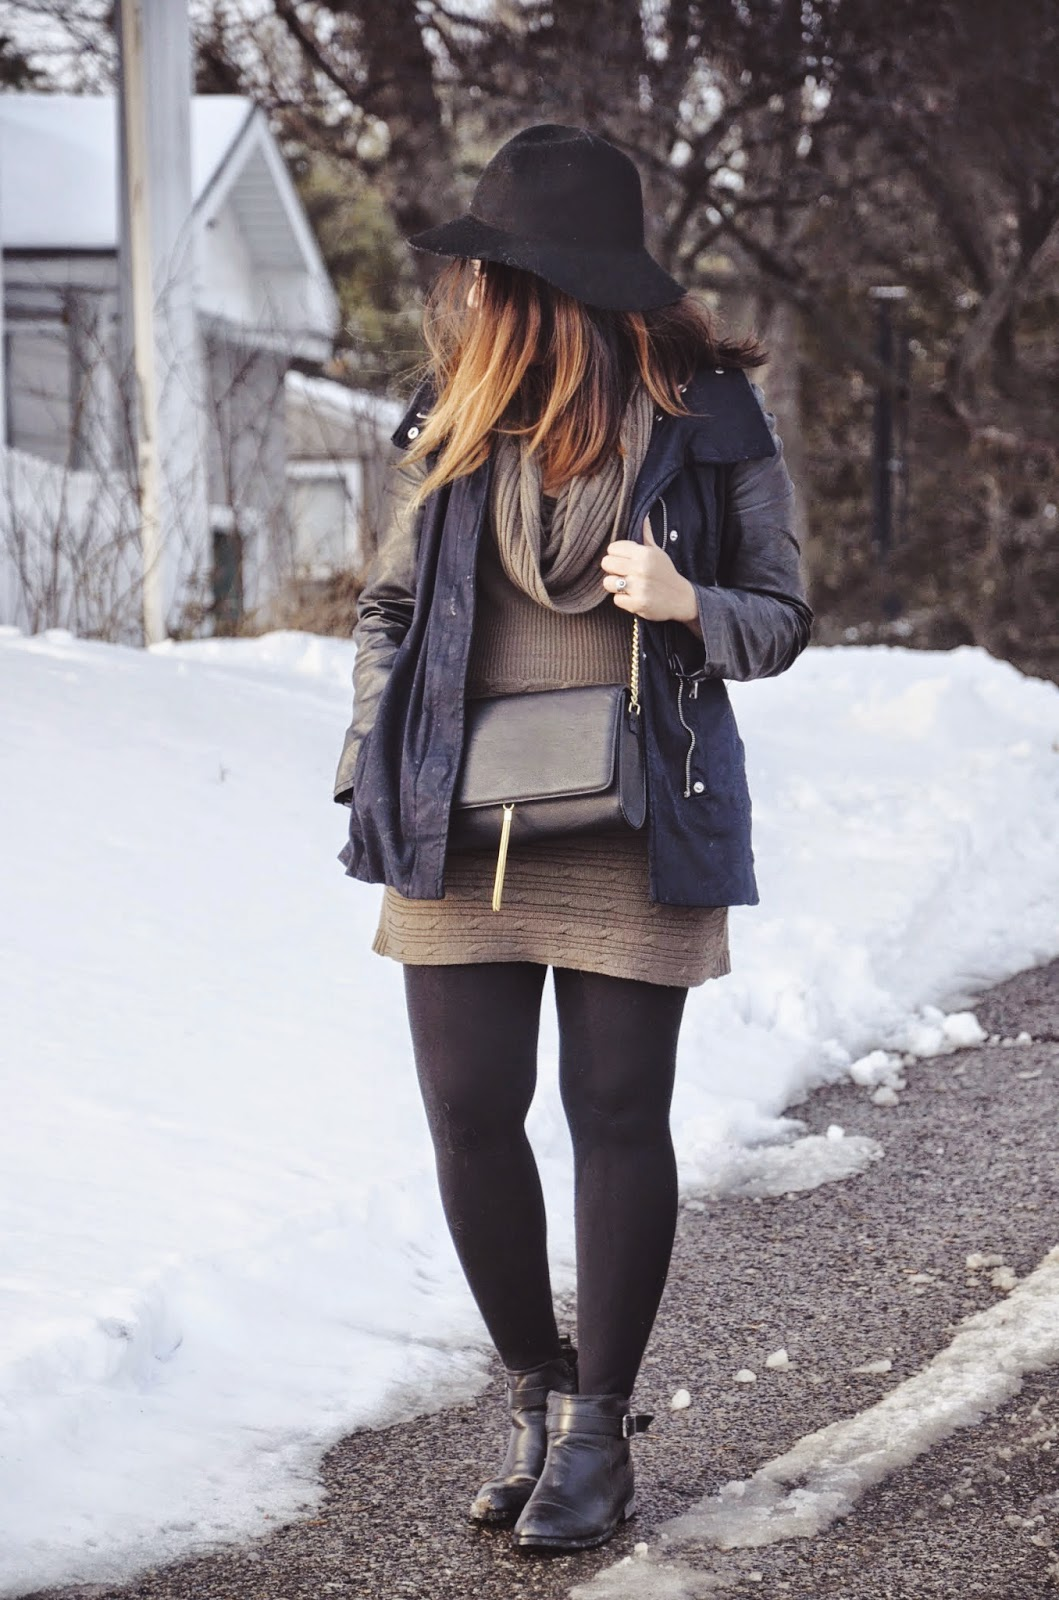 hm parka with leather sleeves, hm tassel crossbody bag, bucco ankle booties, steve madden sweater tights,